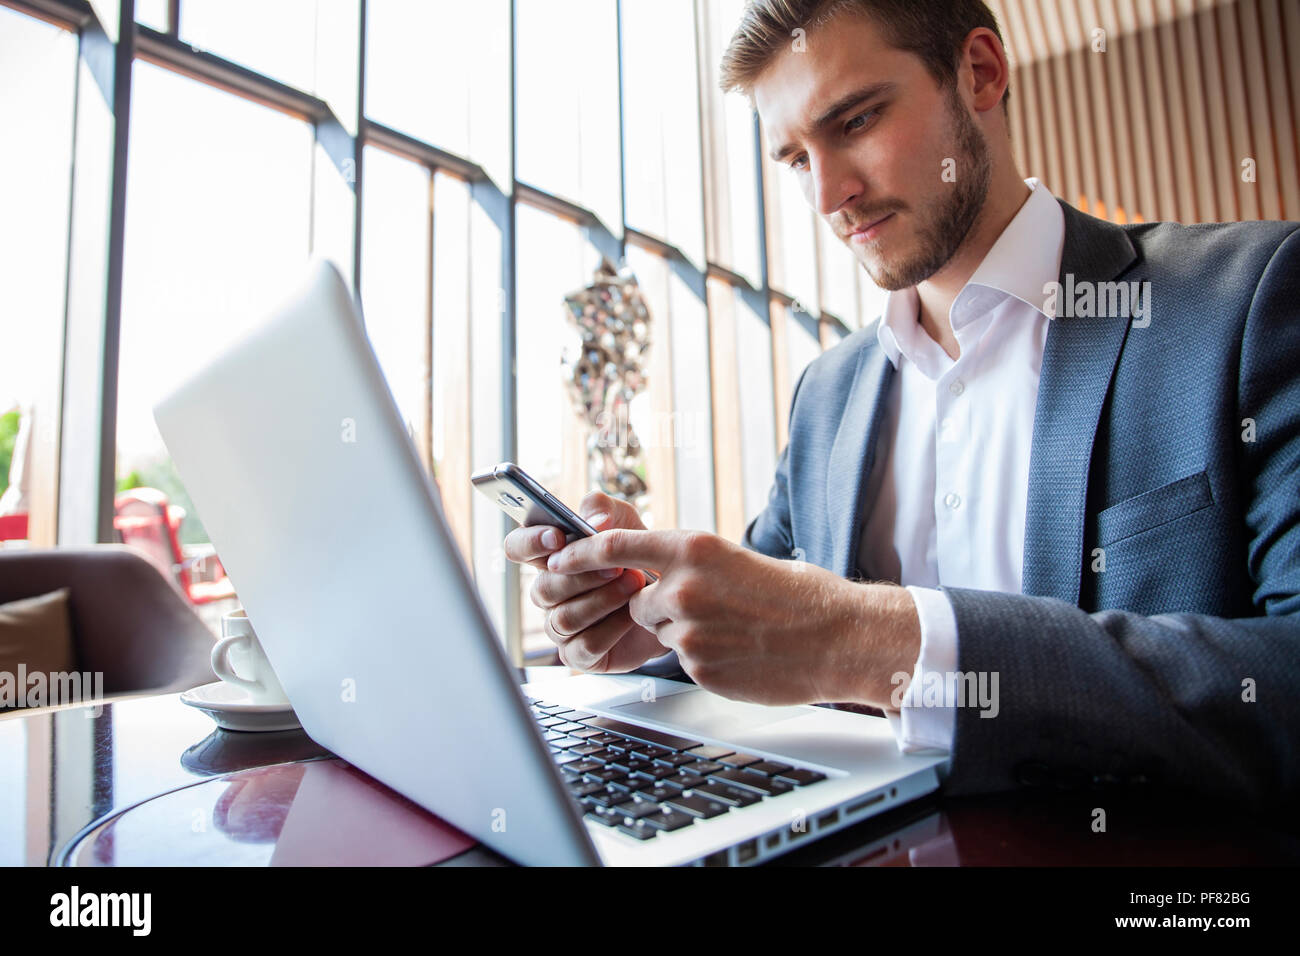 Businessman in black suit using mobile smart phone and working on laptop computer, browsing internet and writing on paper notebook in modern office. Man working on electronics devices with copy space - Stock Image